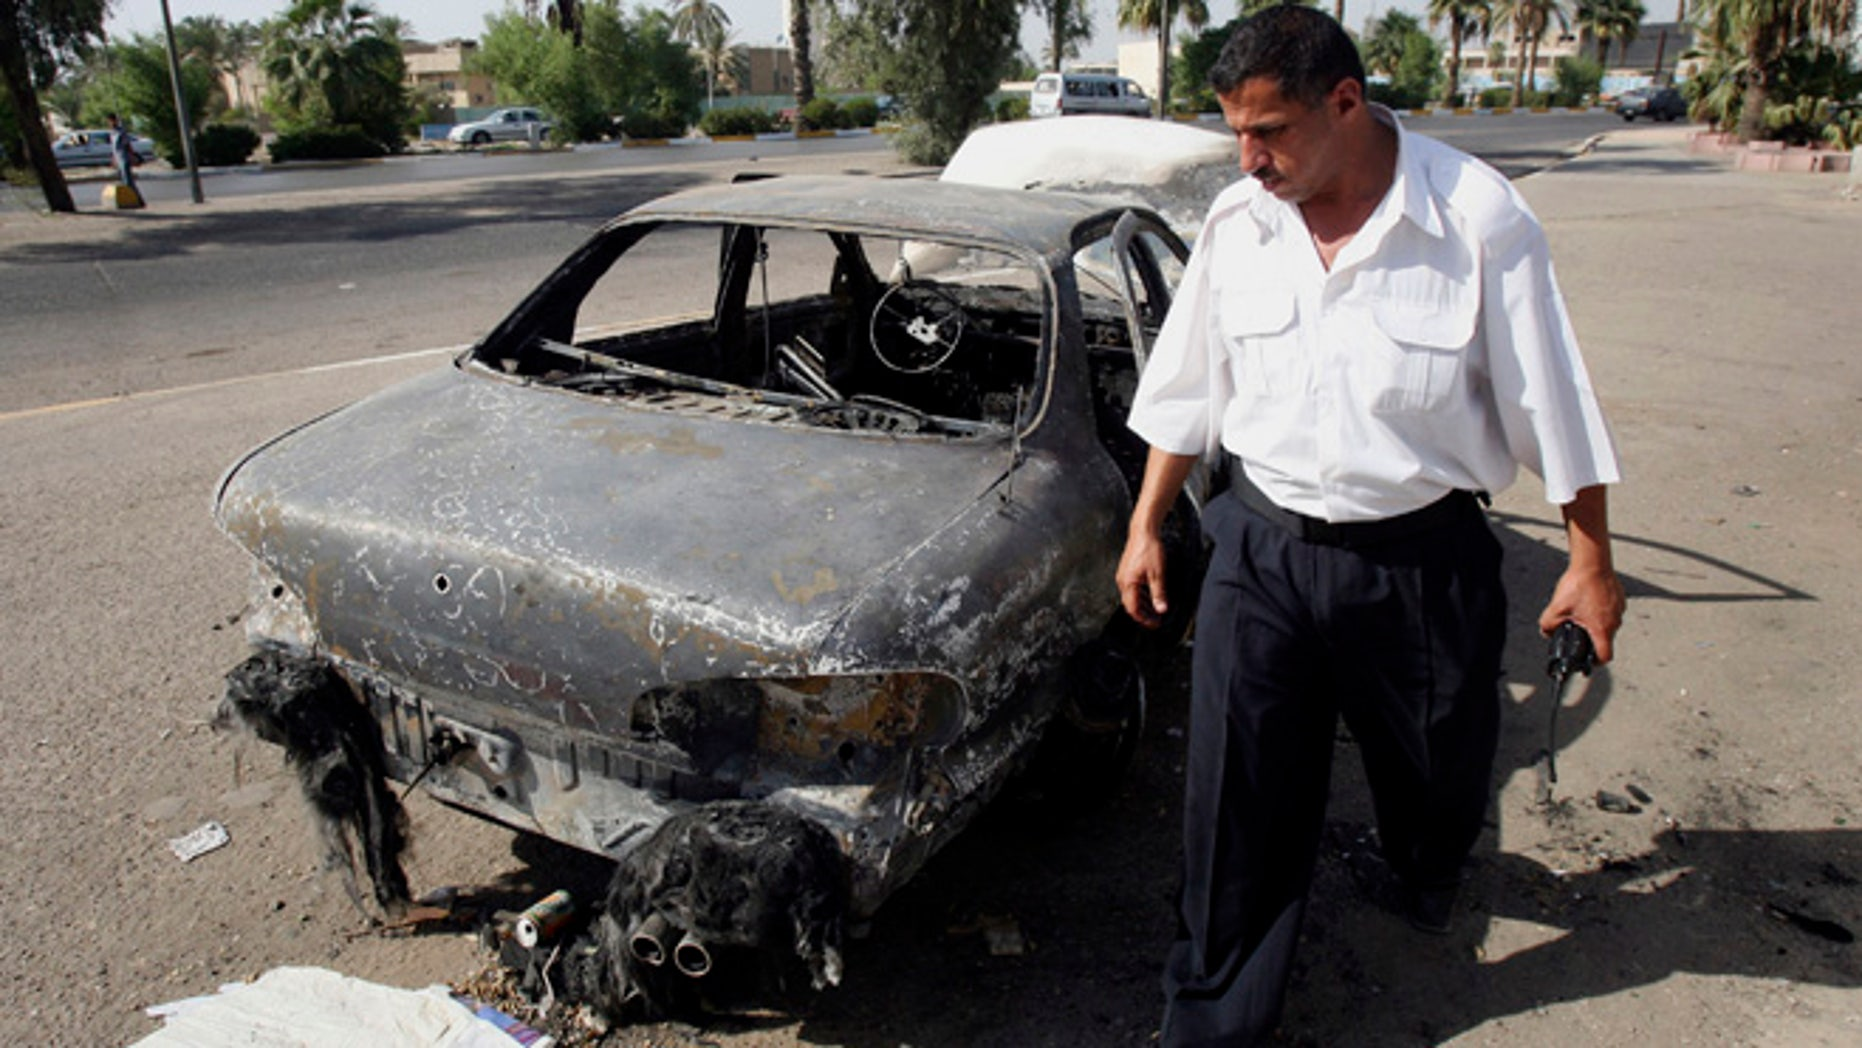 Sept. 25, 2007: An Iraqi traffic policeman inspects a car destroyed by a Blackwater security detail in al-Nisoor Square in Baghdad, Iraq.